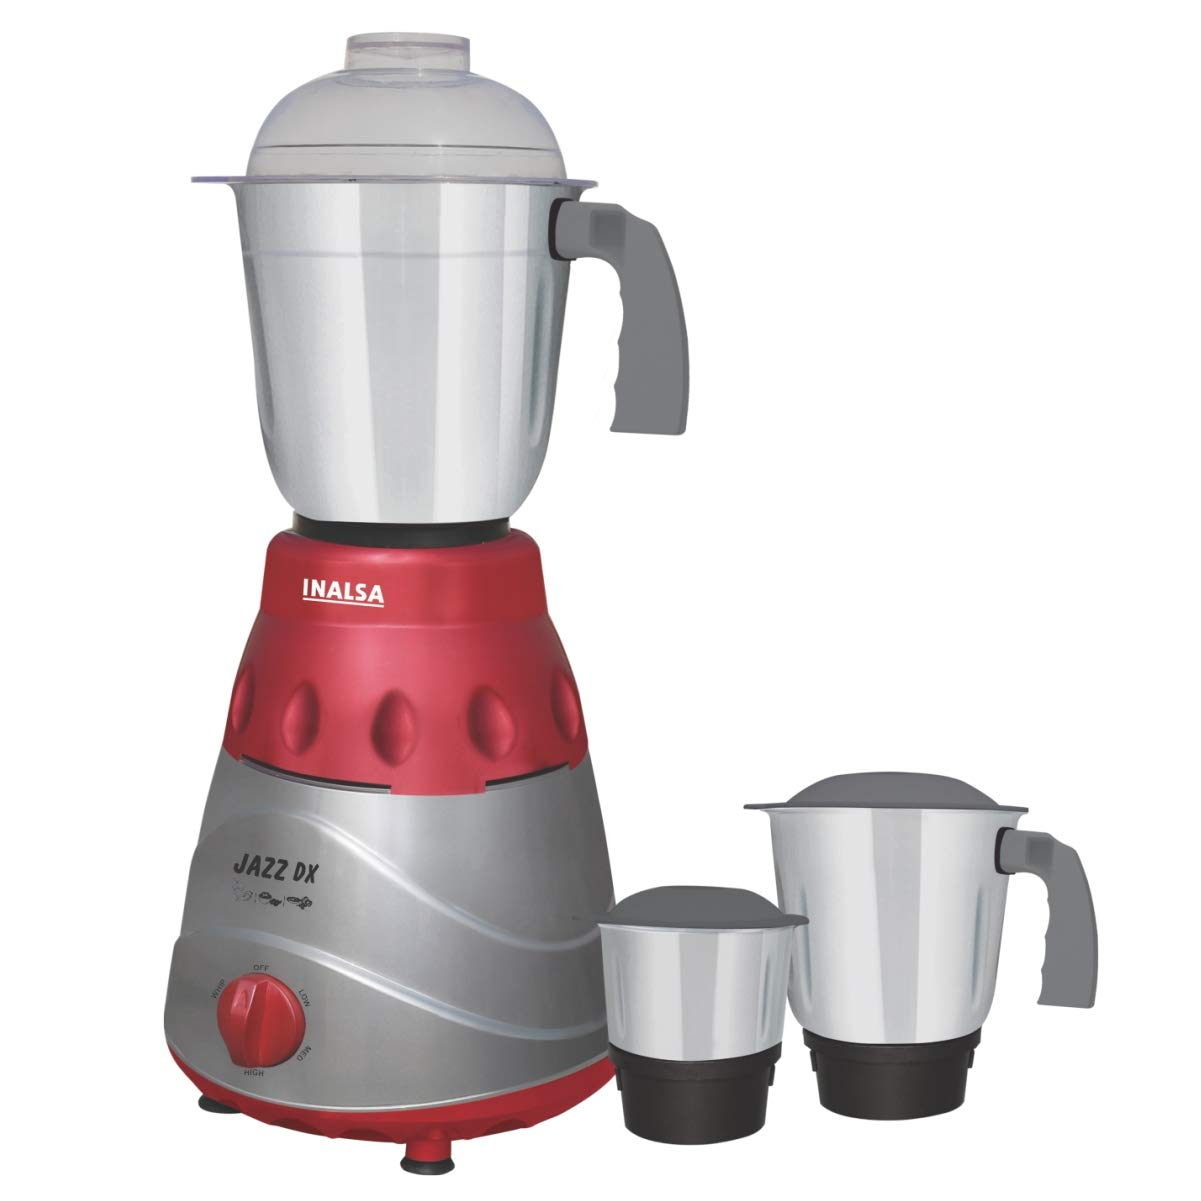 Inalsa Jazz Dx 750-Watt Mixer Grinder with 3 Jars (Grey/Maroon)